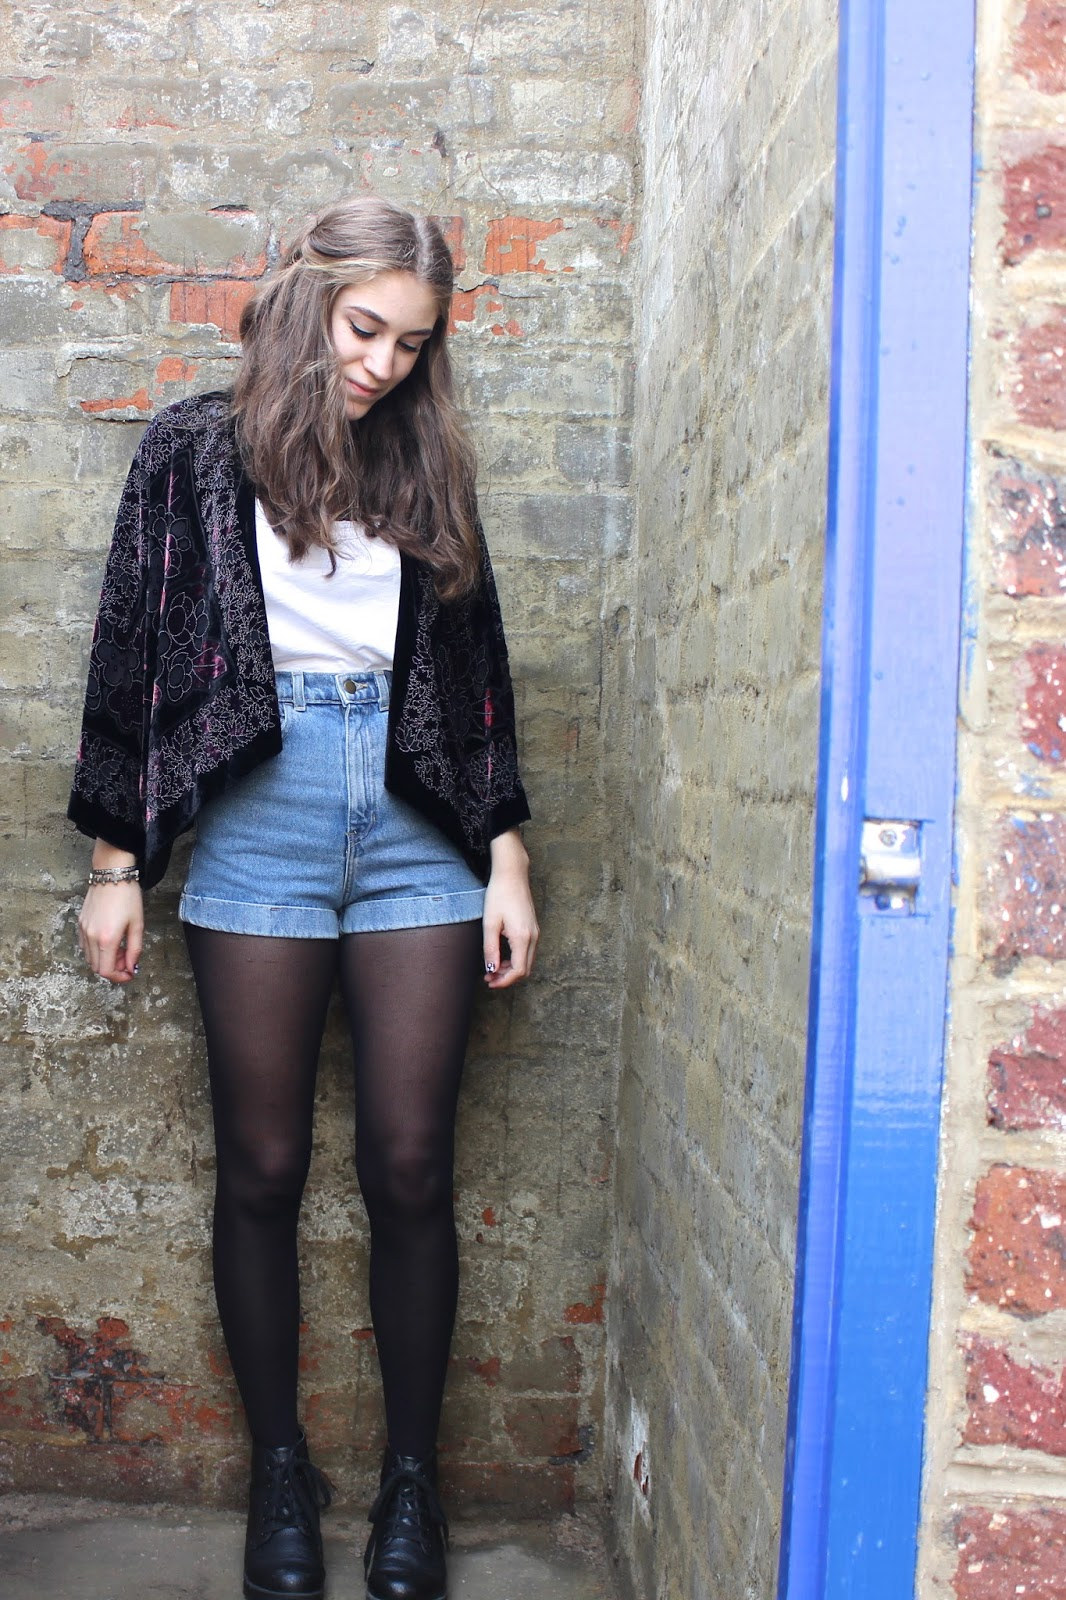 OOTD: The Velvet Dream